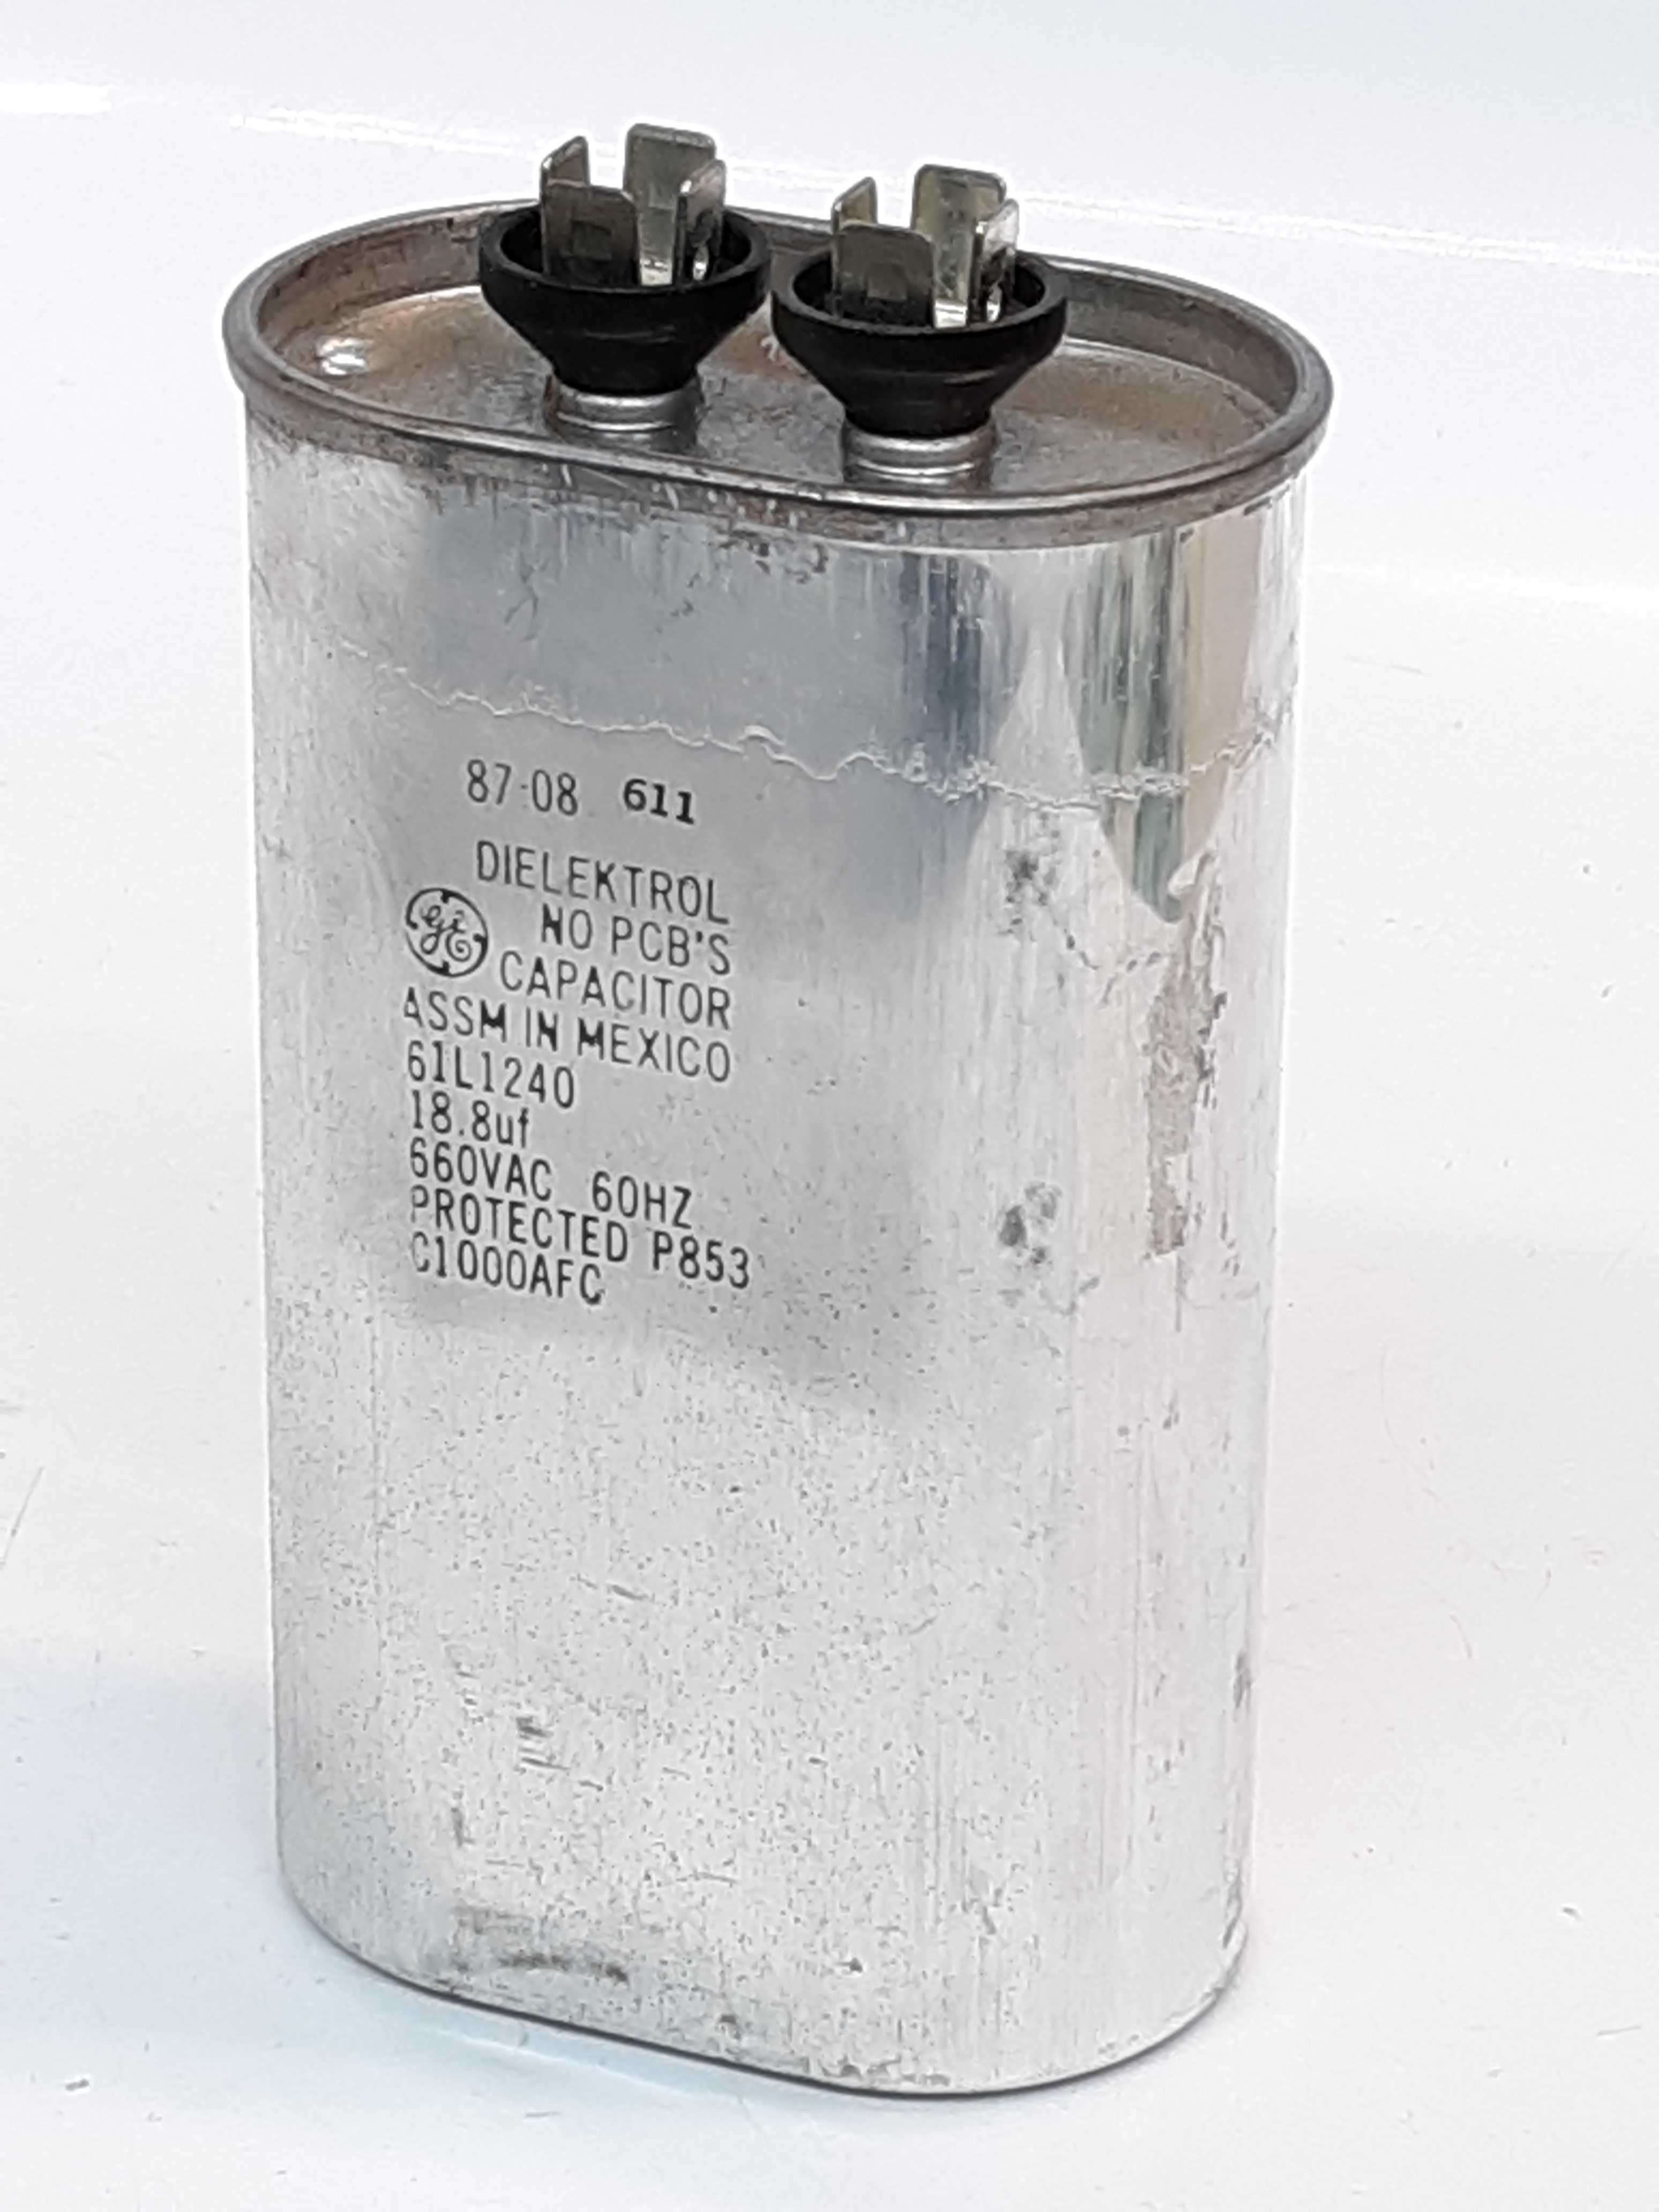 General Electric 61L1240 Dielektrol No PCB'S Capacitor 660 VAC 60Hz